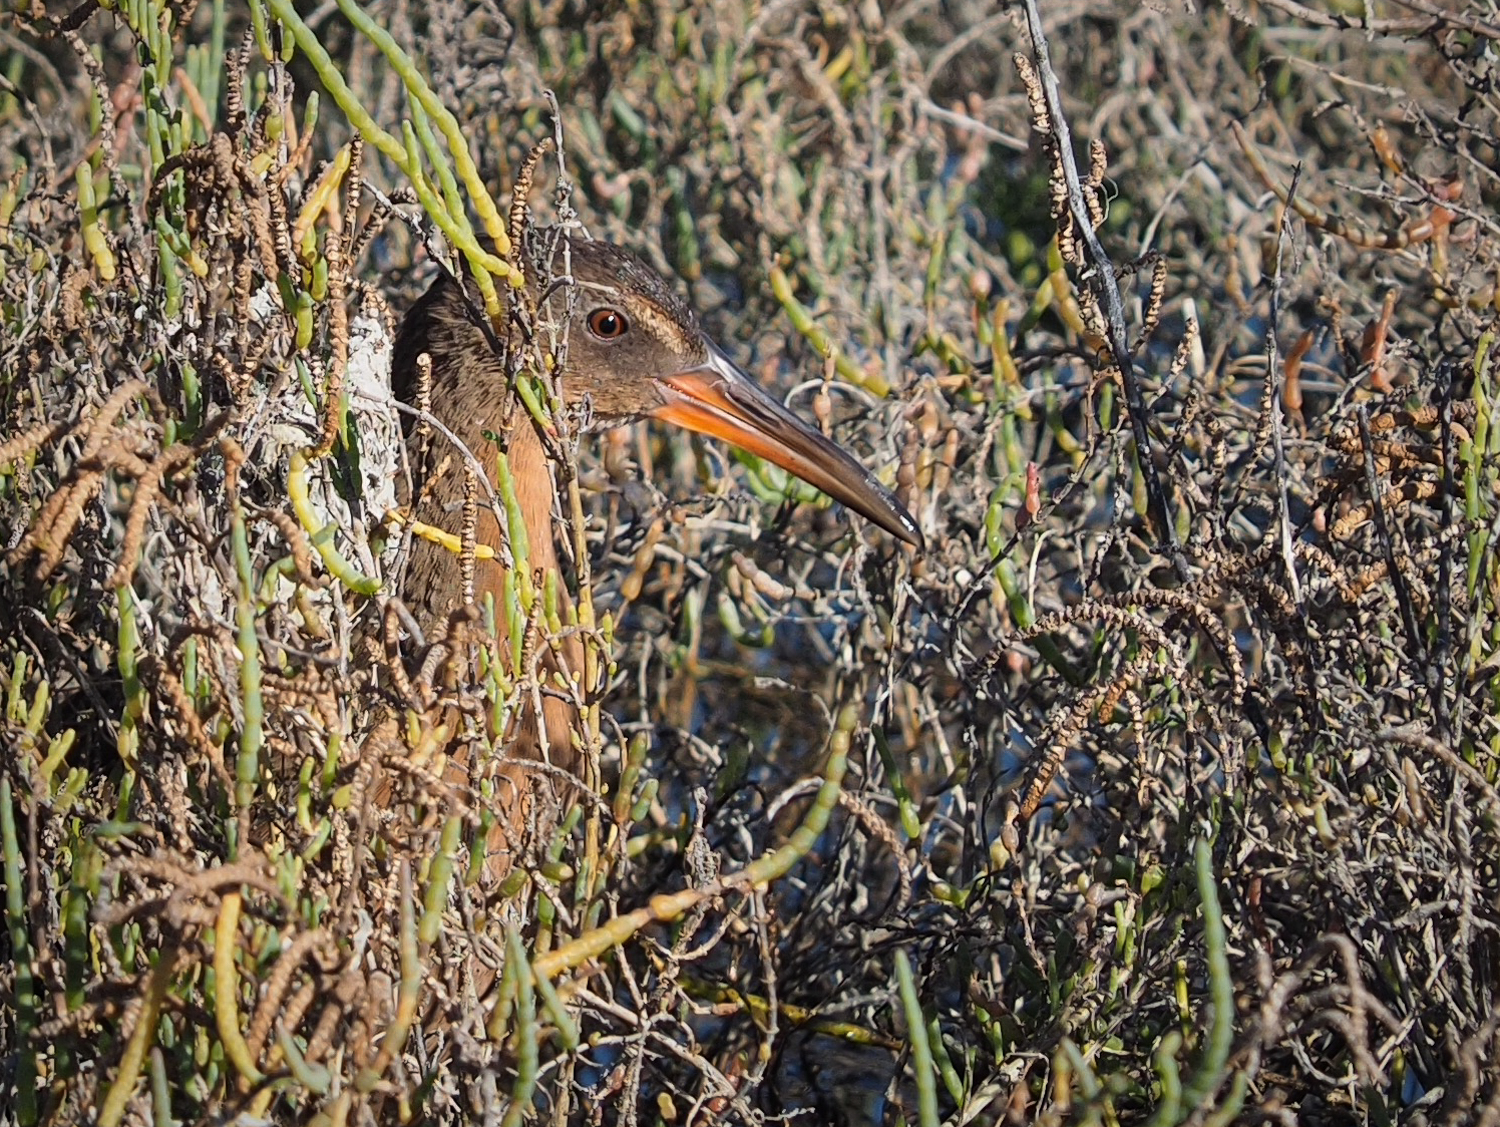 Ridgway's Rail Hiding in Reeds